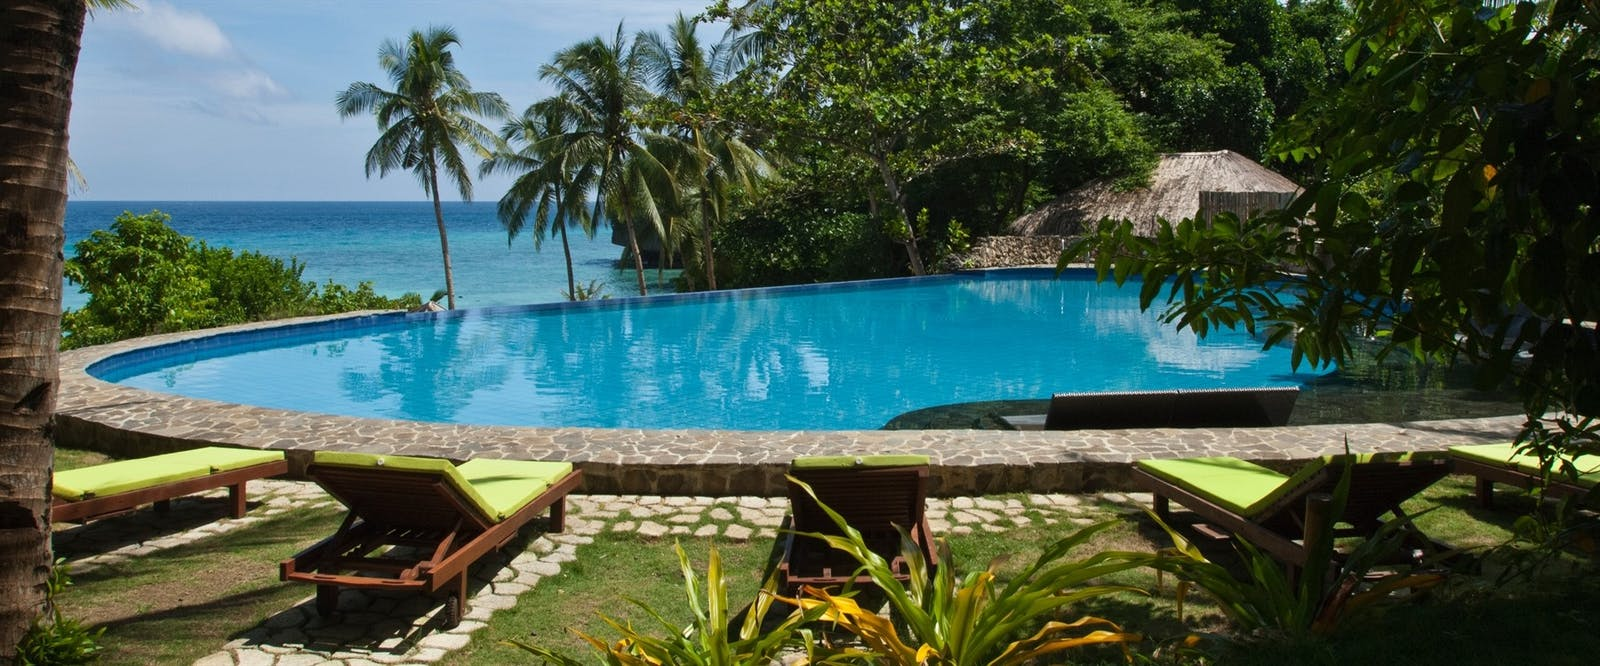 Infinity Swimming Pool at Amun Ini Beach Resort & Spa, Philippines